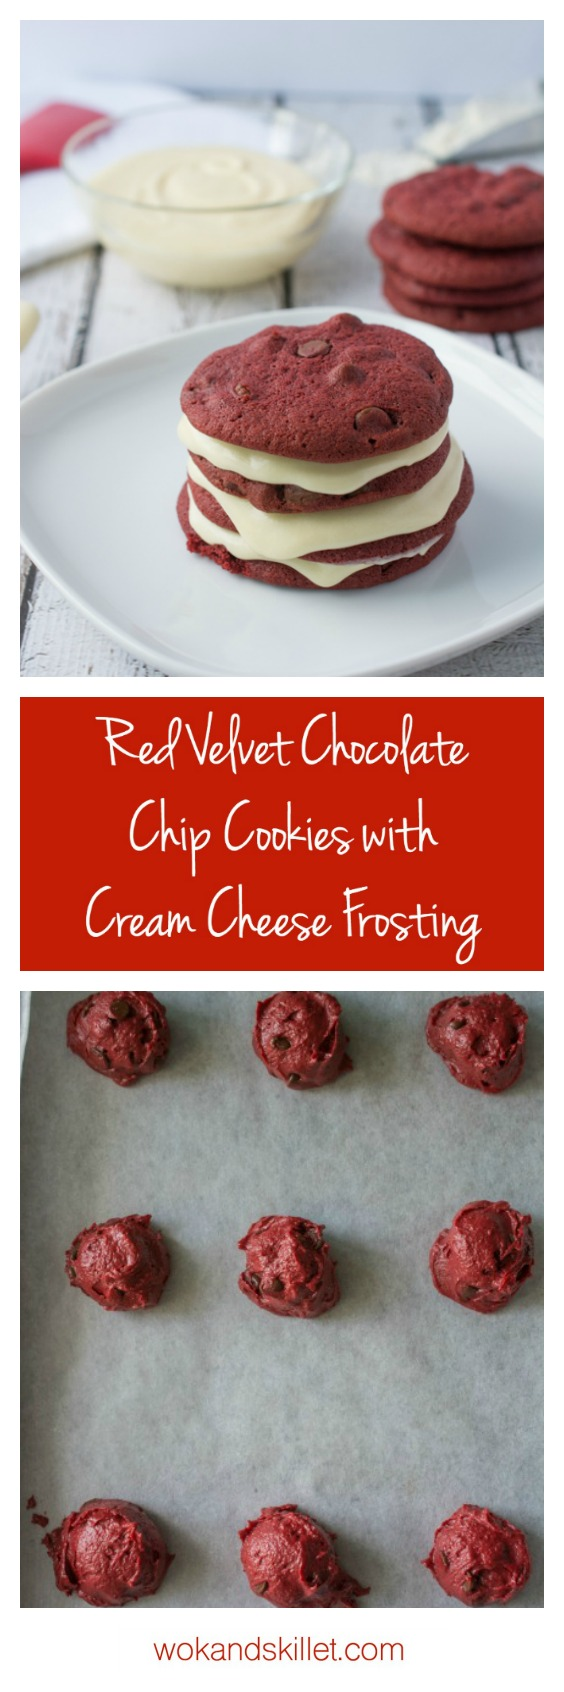 These Red Velvet Chocolate Chip Cookies are awesome enough on their own, but add the Cream Cheese Frosting and it takes the cookie to a whole new level of YUM!